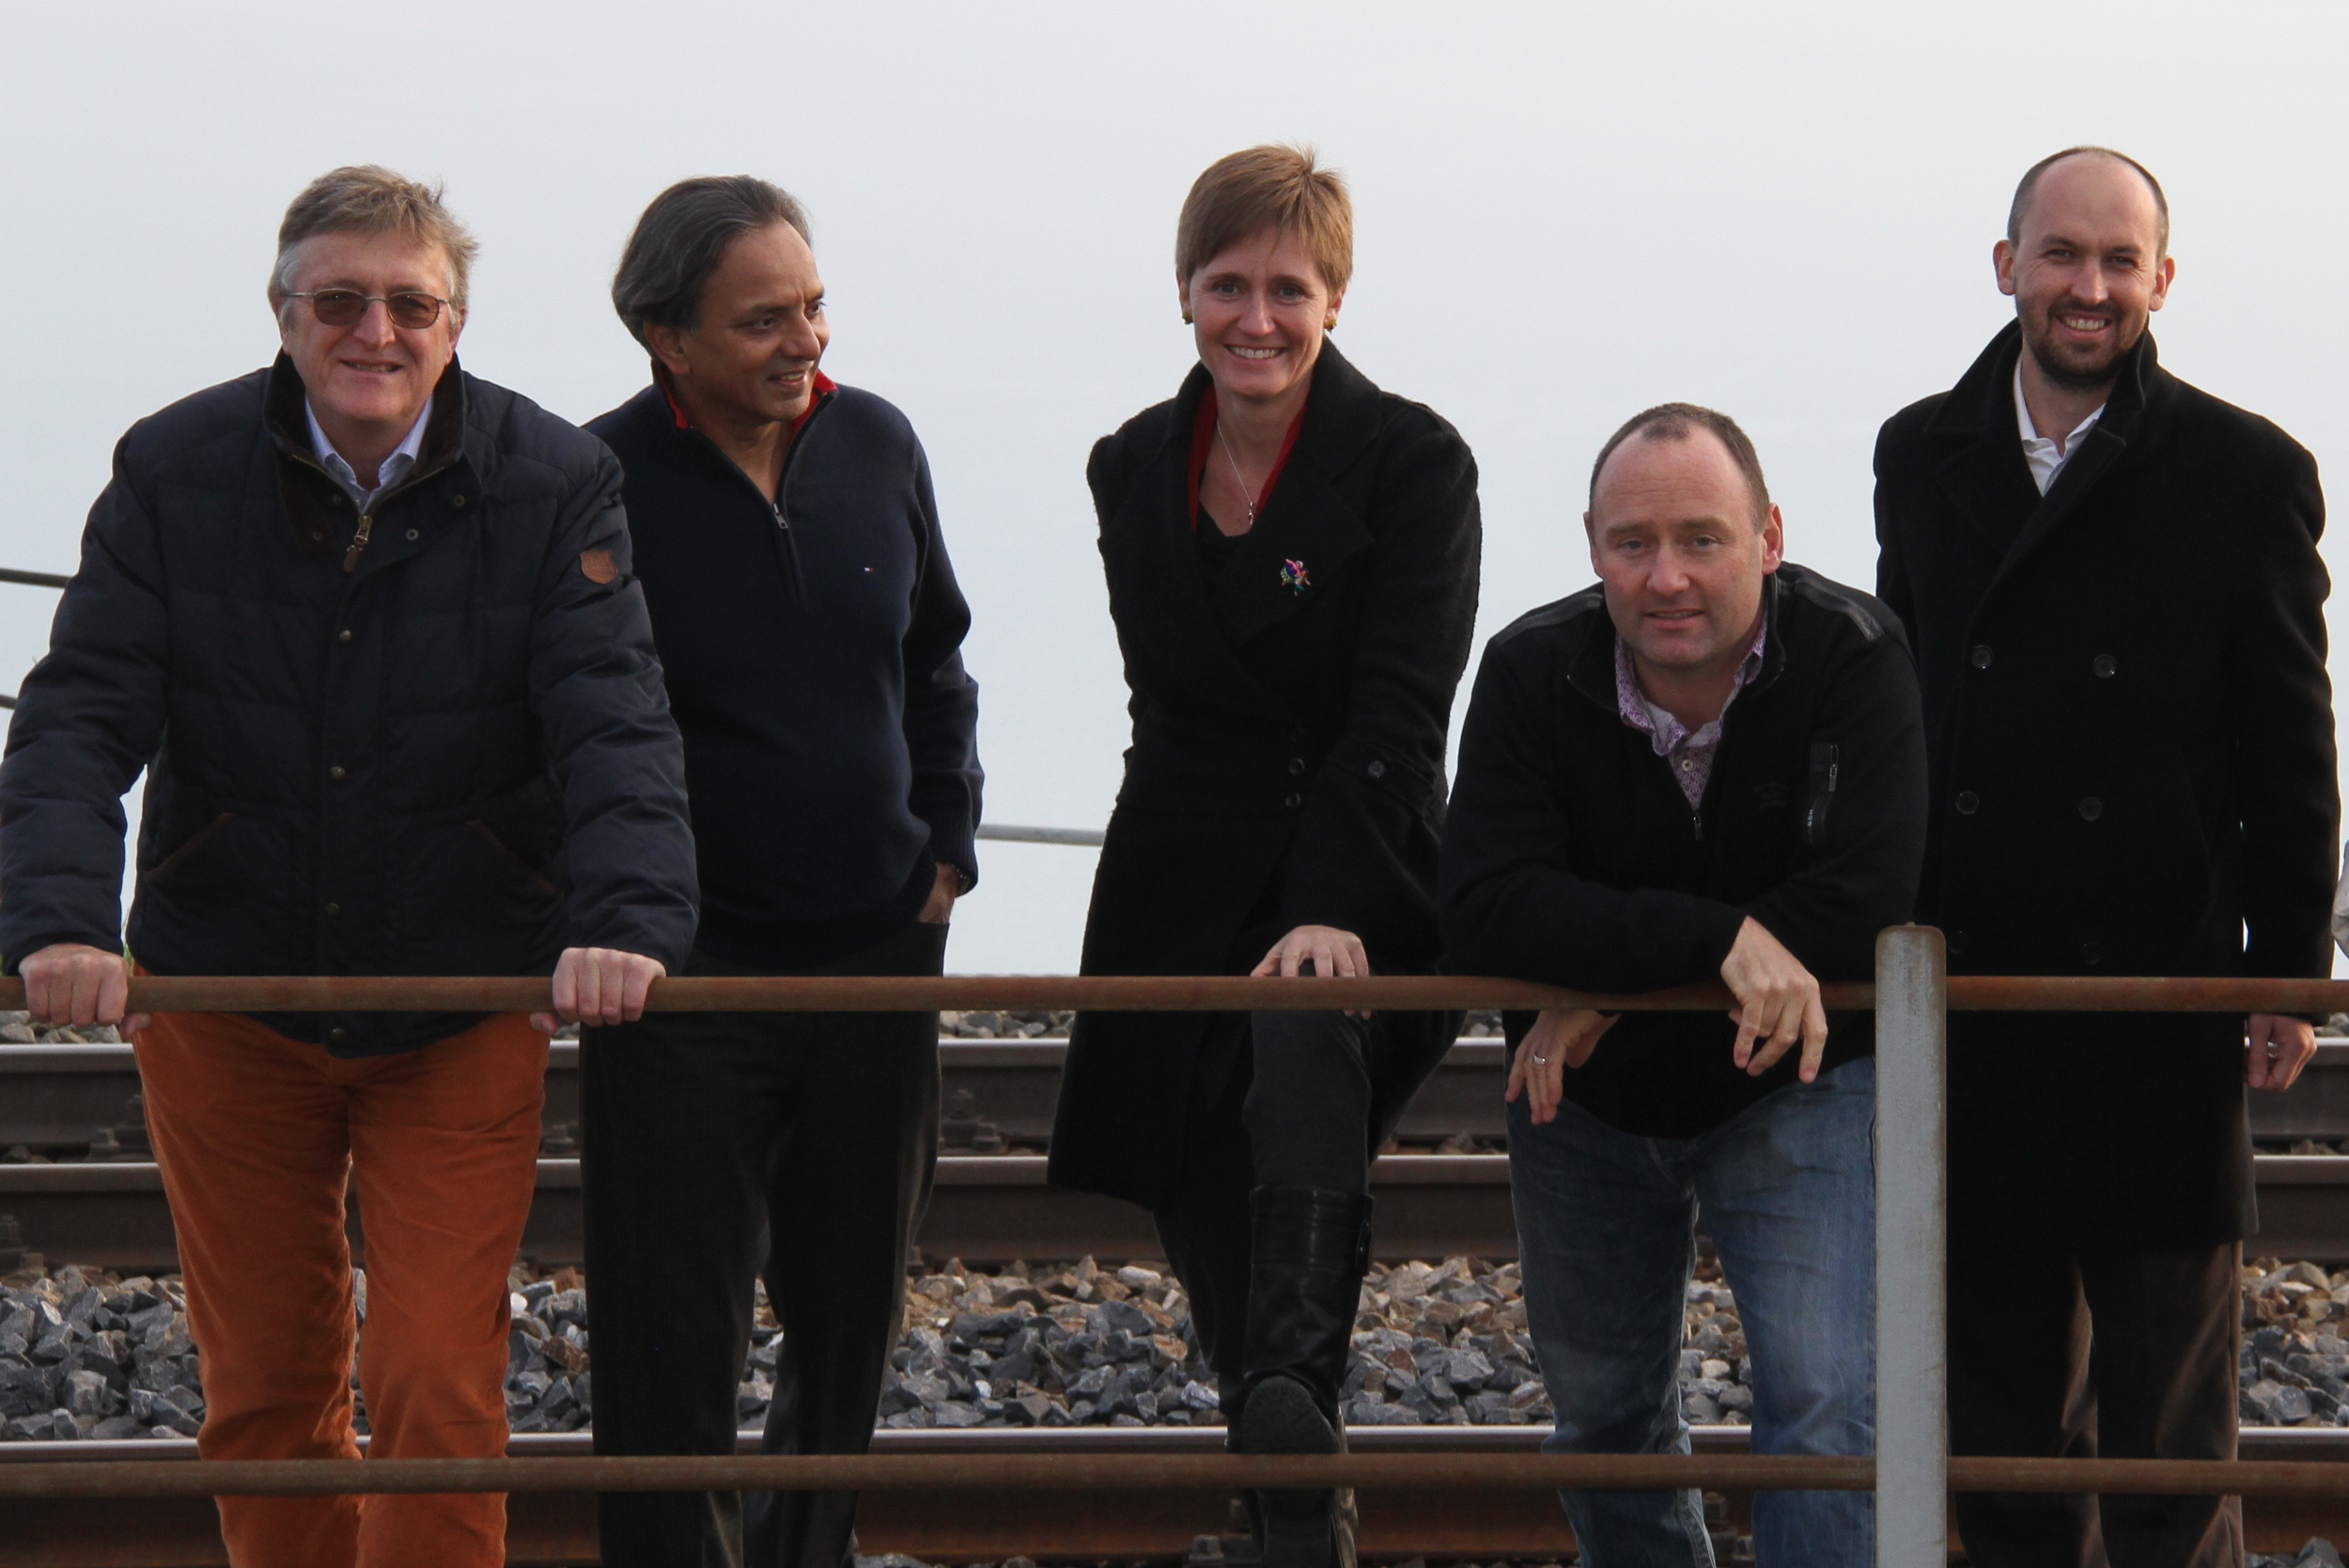 The 50+20 core auditors team: from left to right, Thomas Dyllick, Paul Shrivastava, Katrin Muff, Mark Drewell, and John North